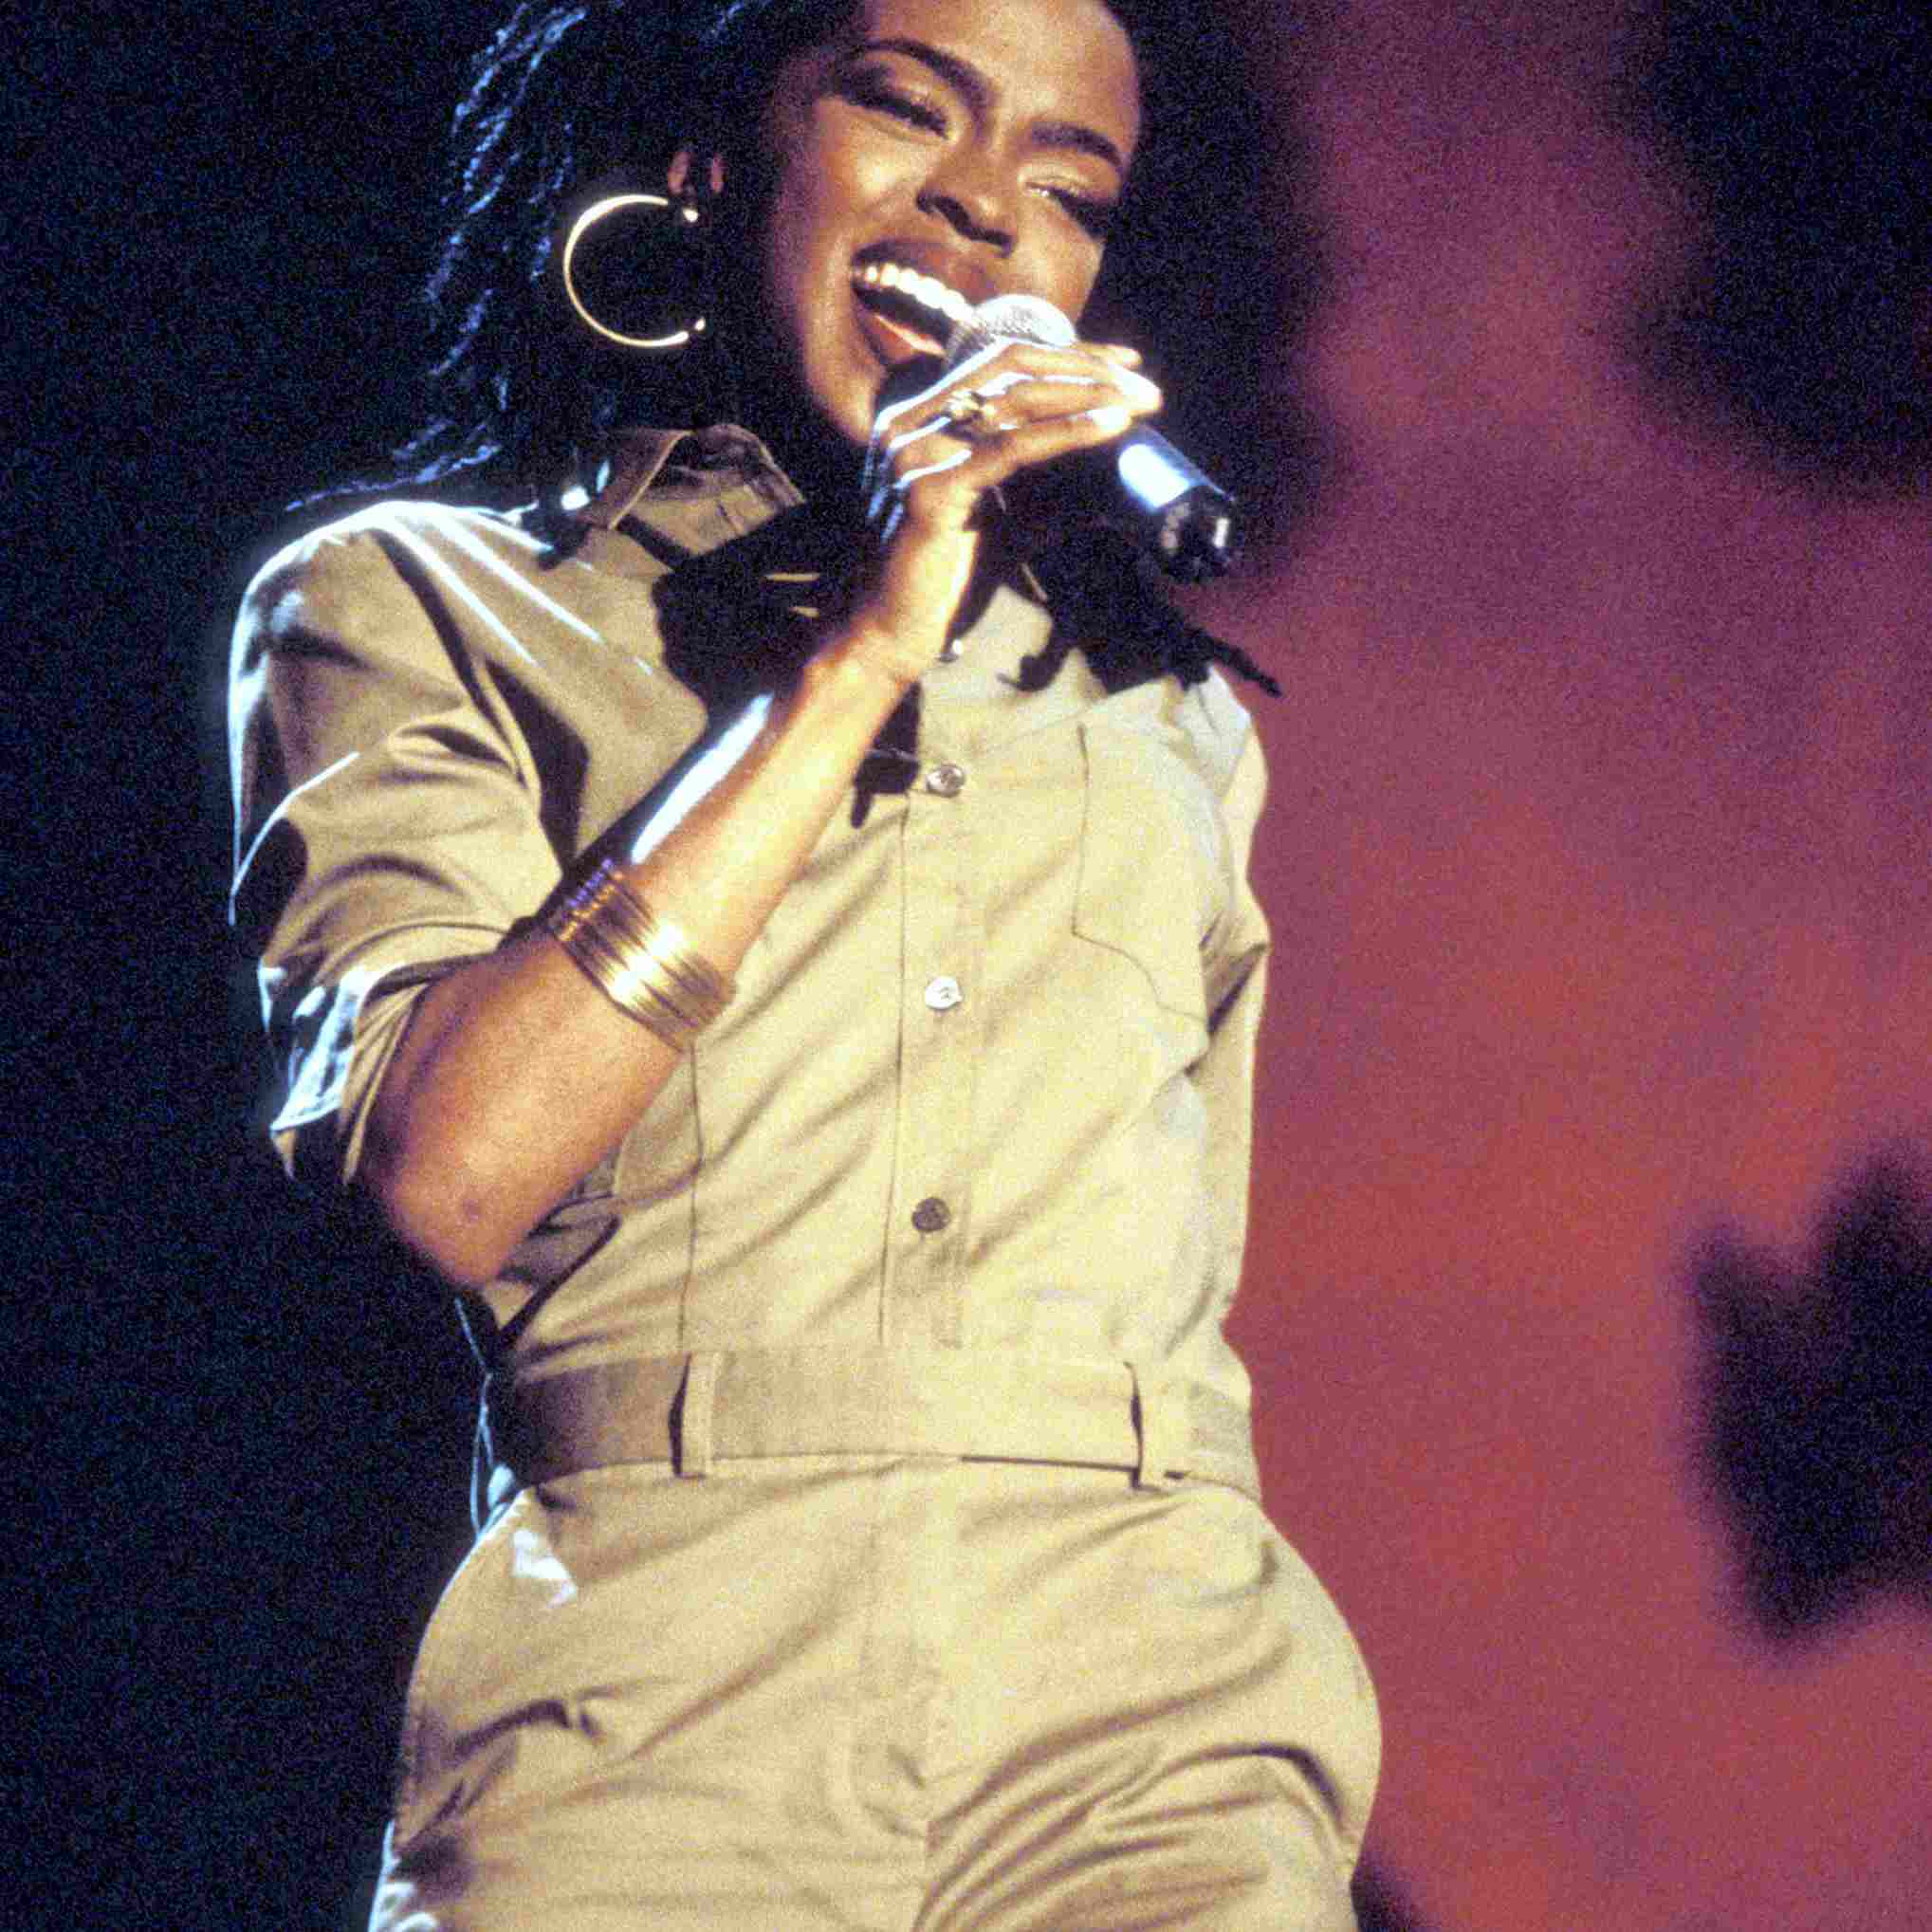 The Top 10 Modern Soul Singers